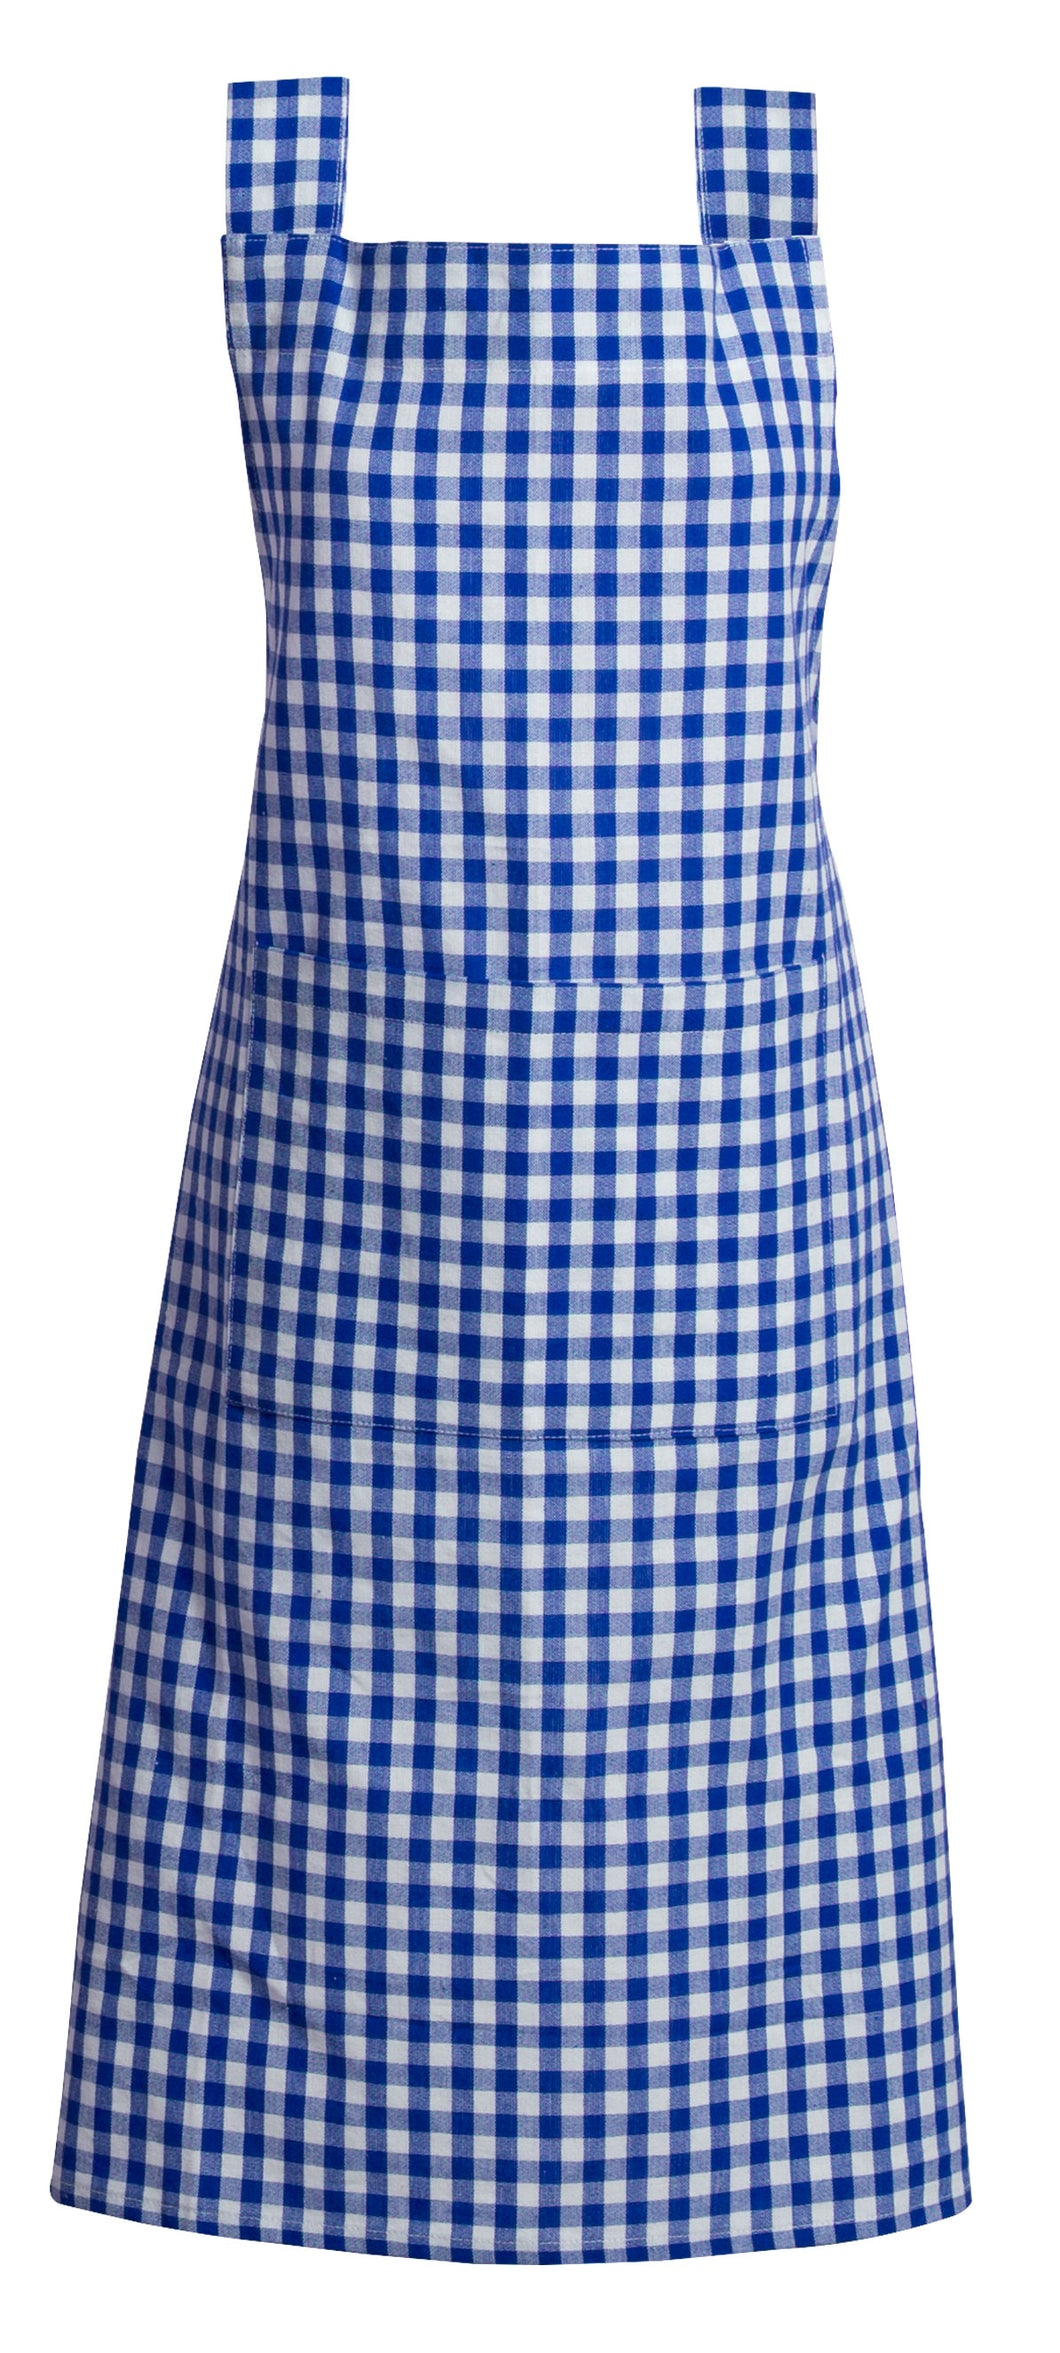 Gingham Check Aprons 100% Cotton by RANS